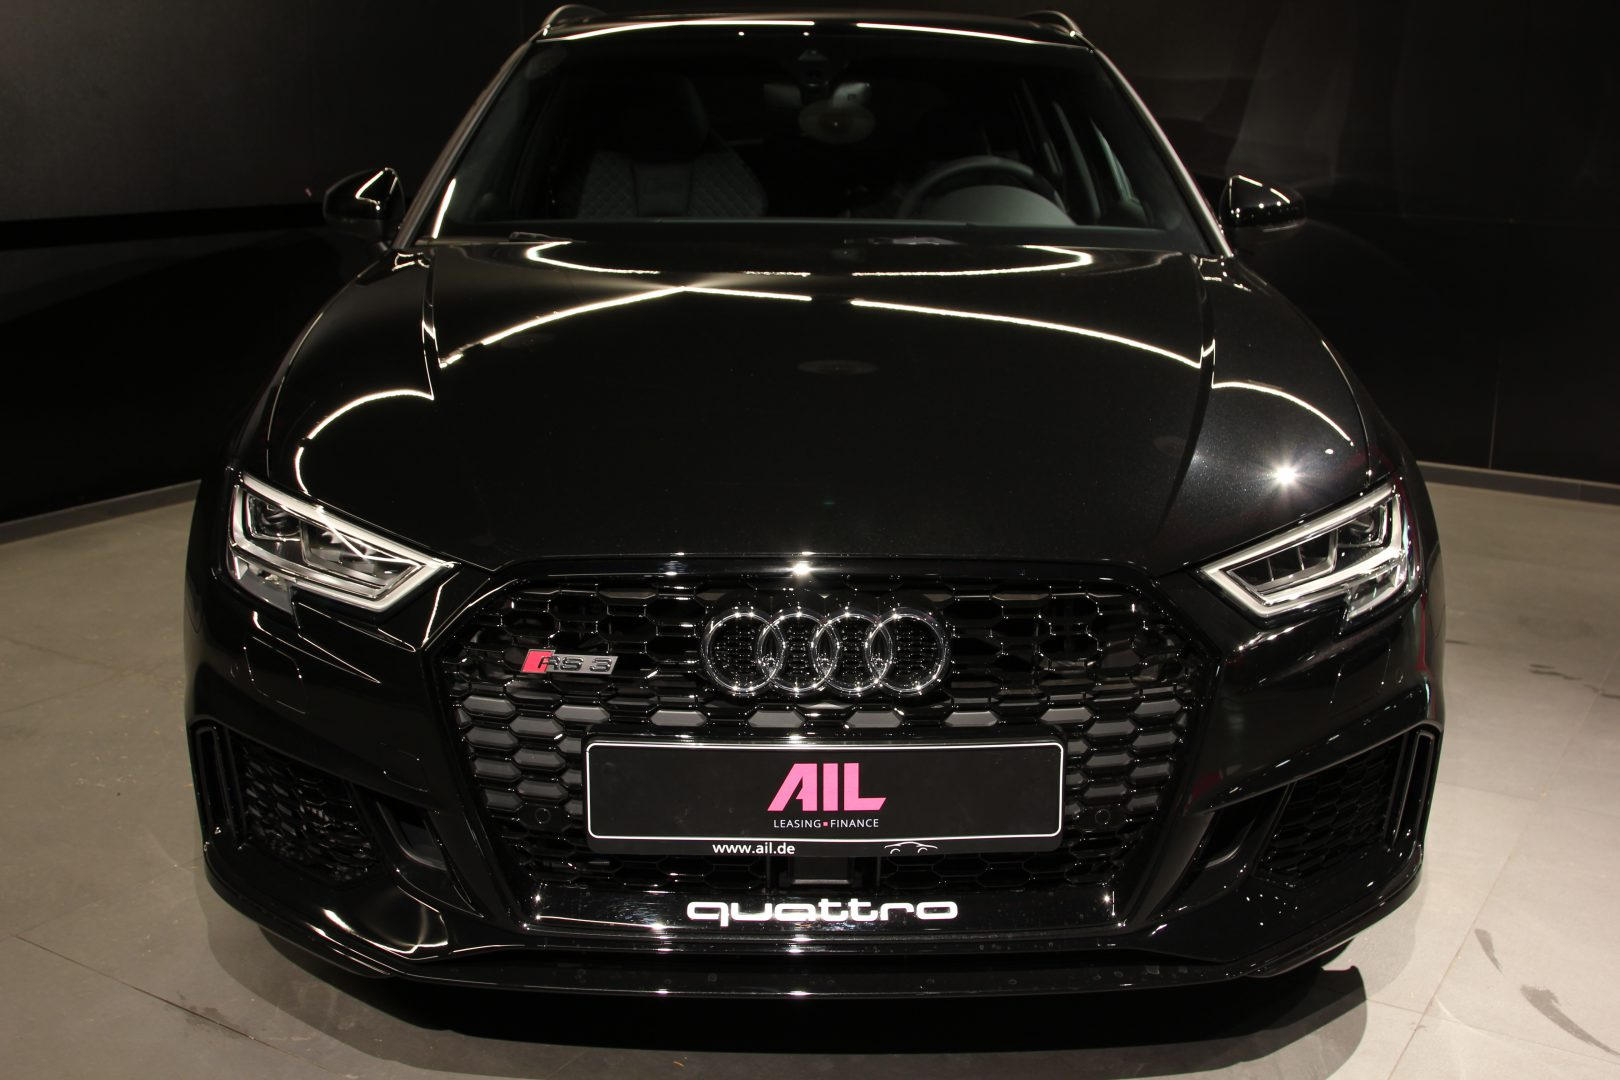 AIL Audi RS3 Sportback Matrix Panorama Virtual Cockpit 2